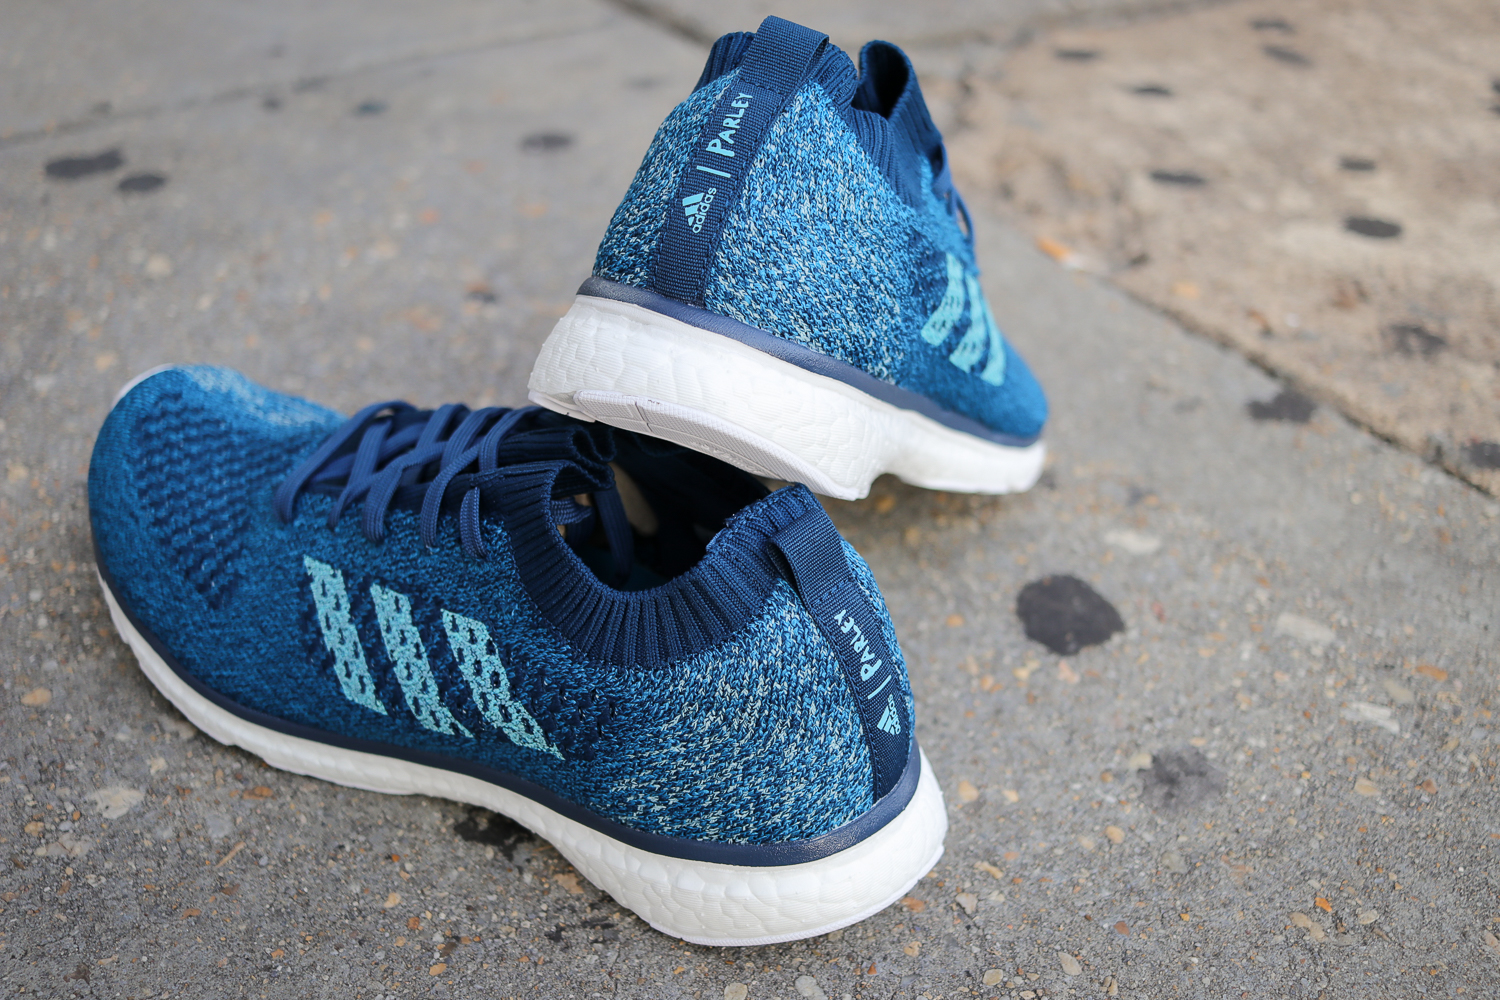 huge discount d9669 46847 Built with the same Parley Plastic infused Primeknit upper, the adizero  Prime Parley sits on the same midsole  outsole platform as the adios Boost  3, ...